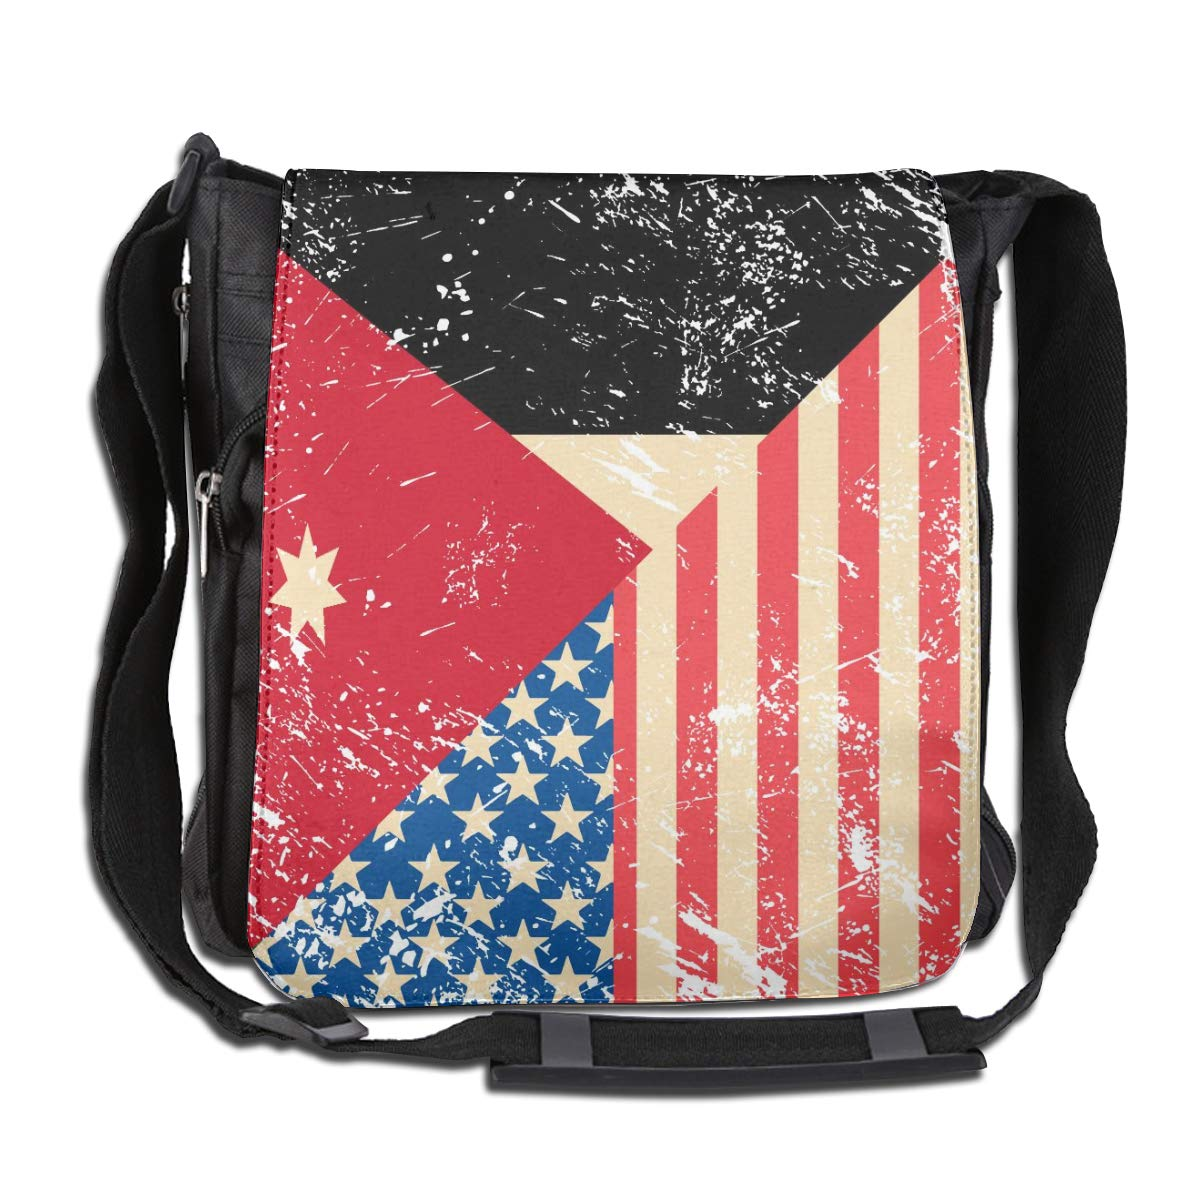 Unisex Stylish Satchel Messenger Bags American And Jordan Retro Flag Crossbody Shoulder Bag Hiking Bags For School//Work//Trips